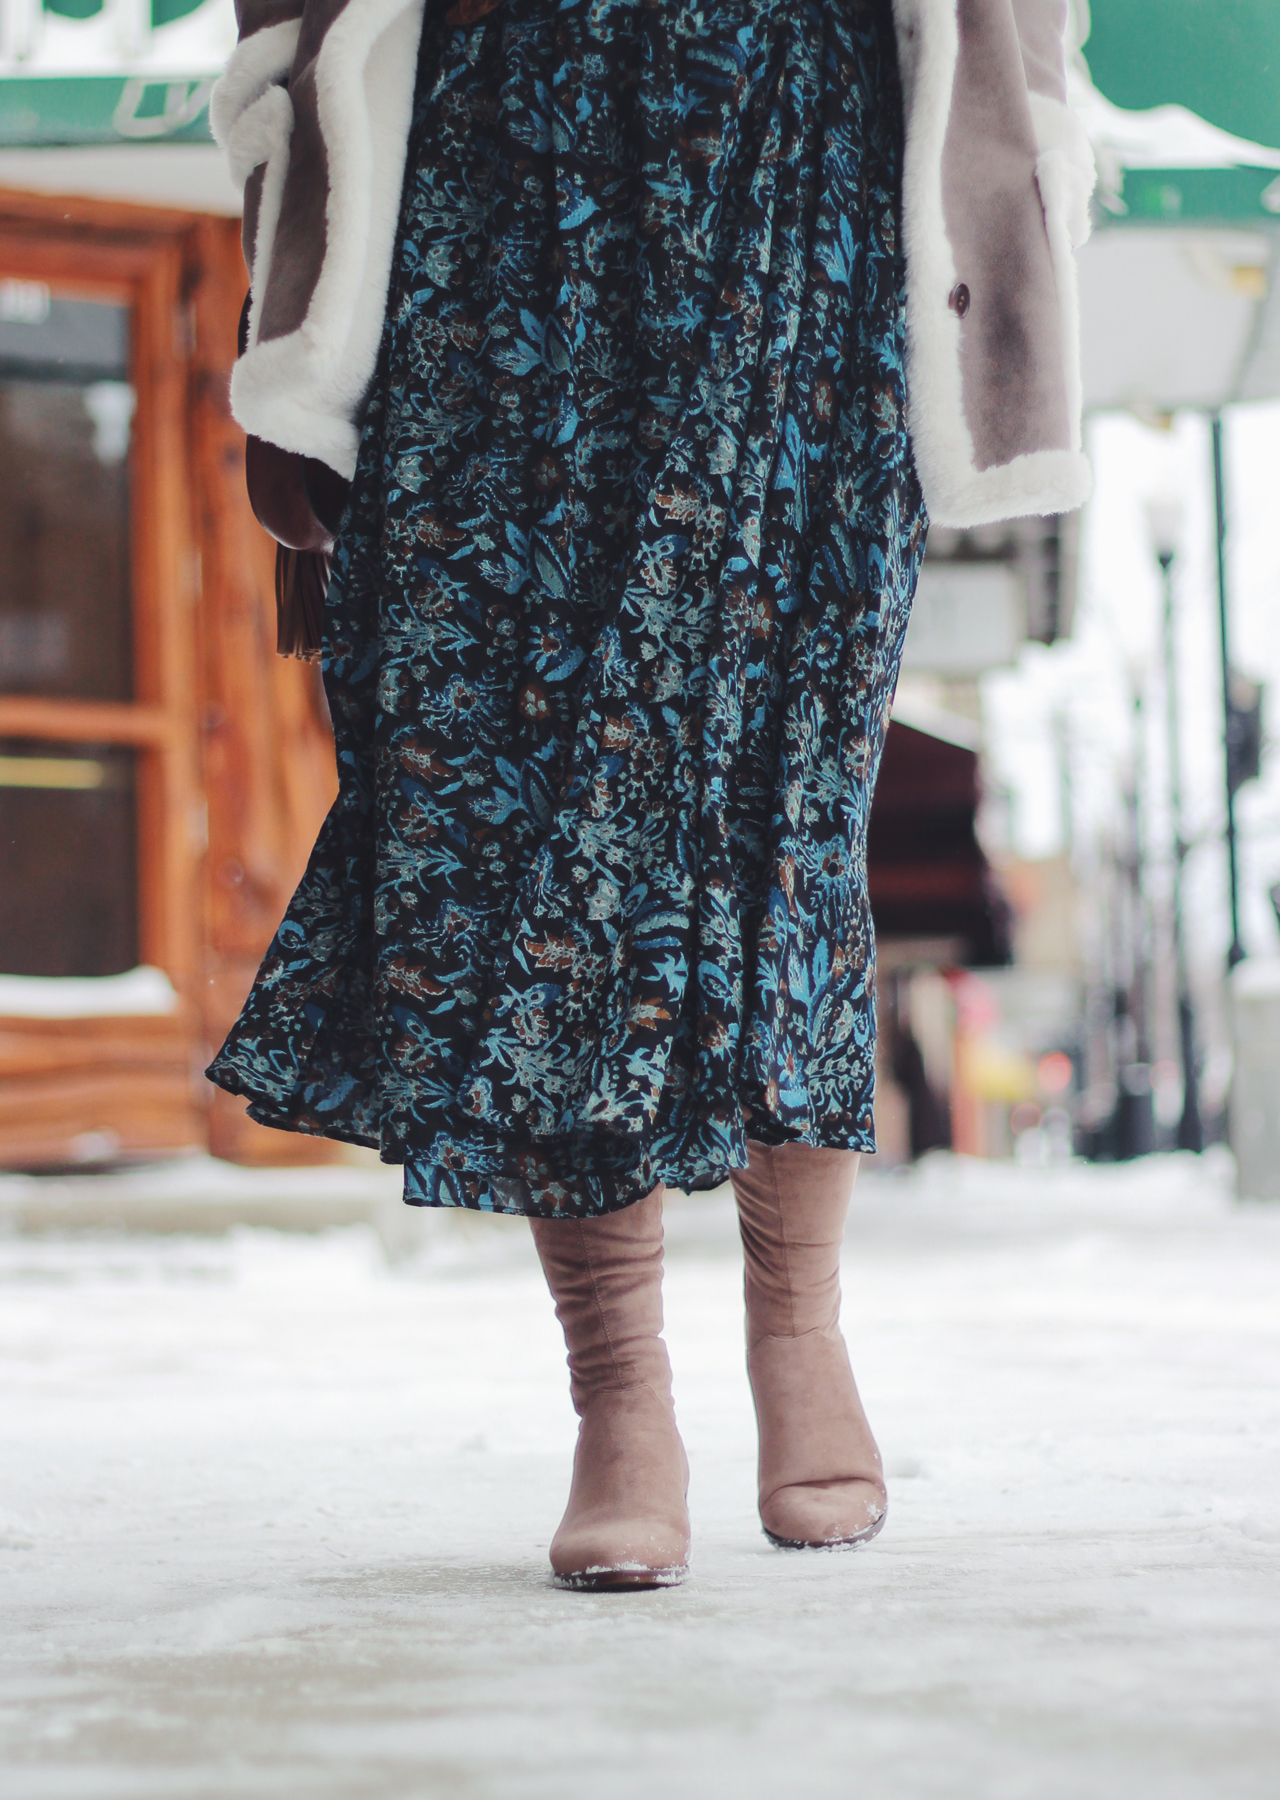 The Steele Maiden: Sheridan, Wyoming - Mint Bar - Shearling Coat and Floral Maxi Skirt